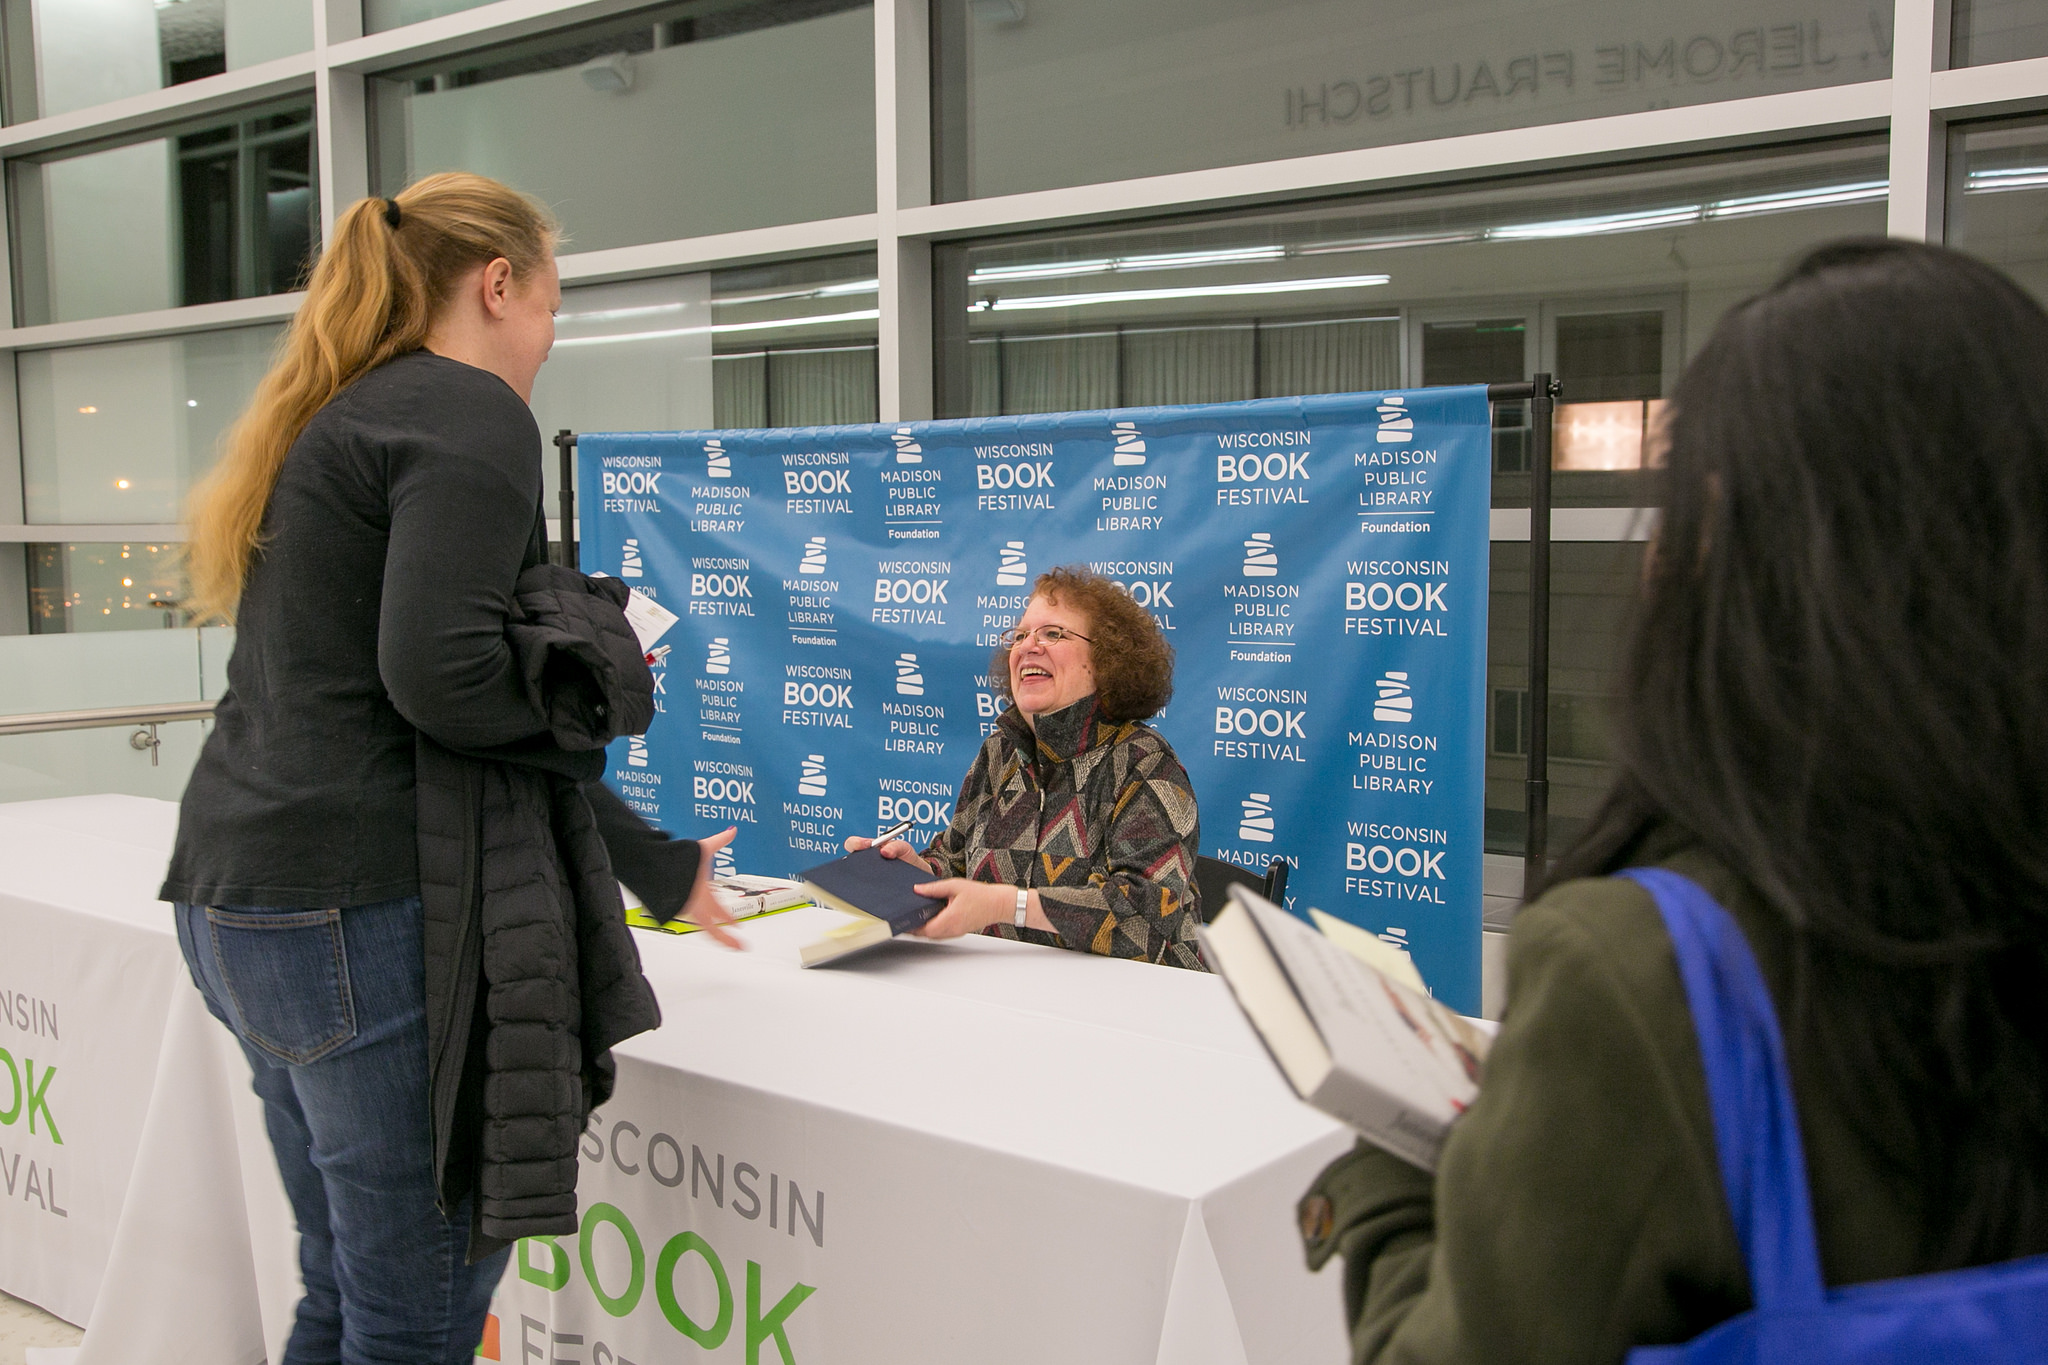 photo of Amy signing books at a Wisconsin Book Festival event